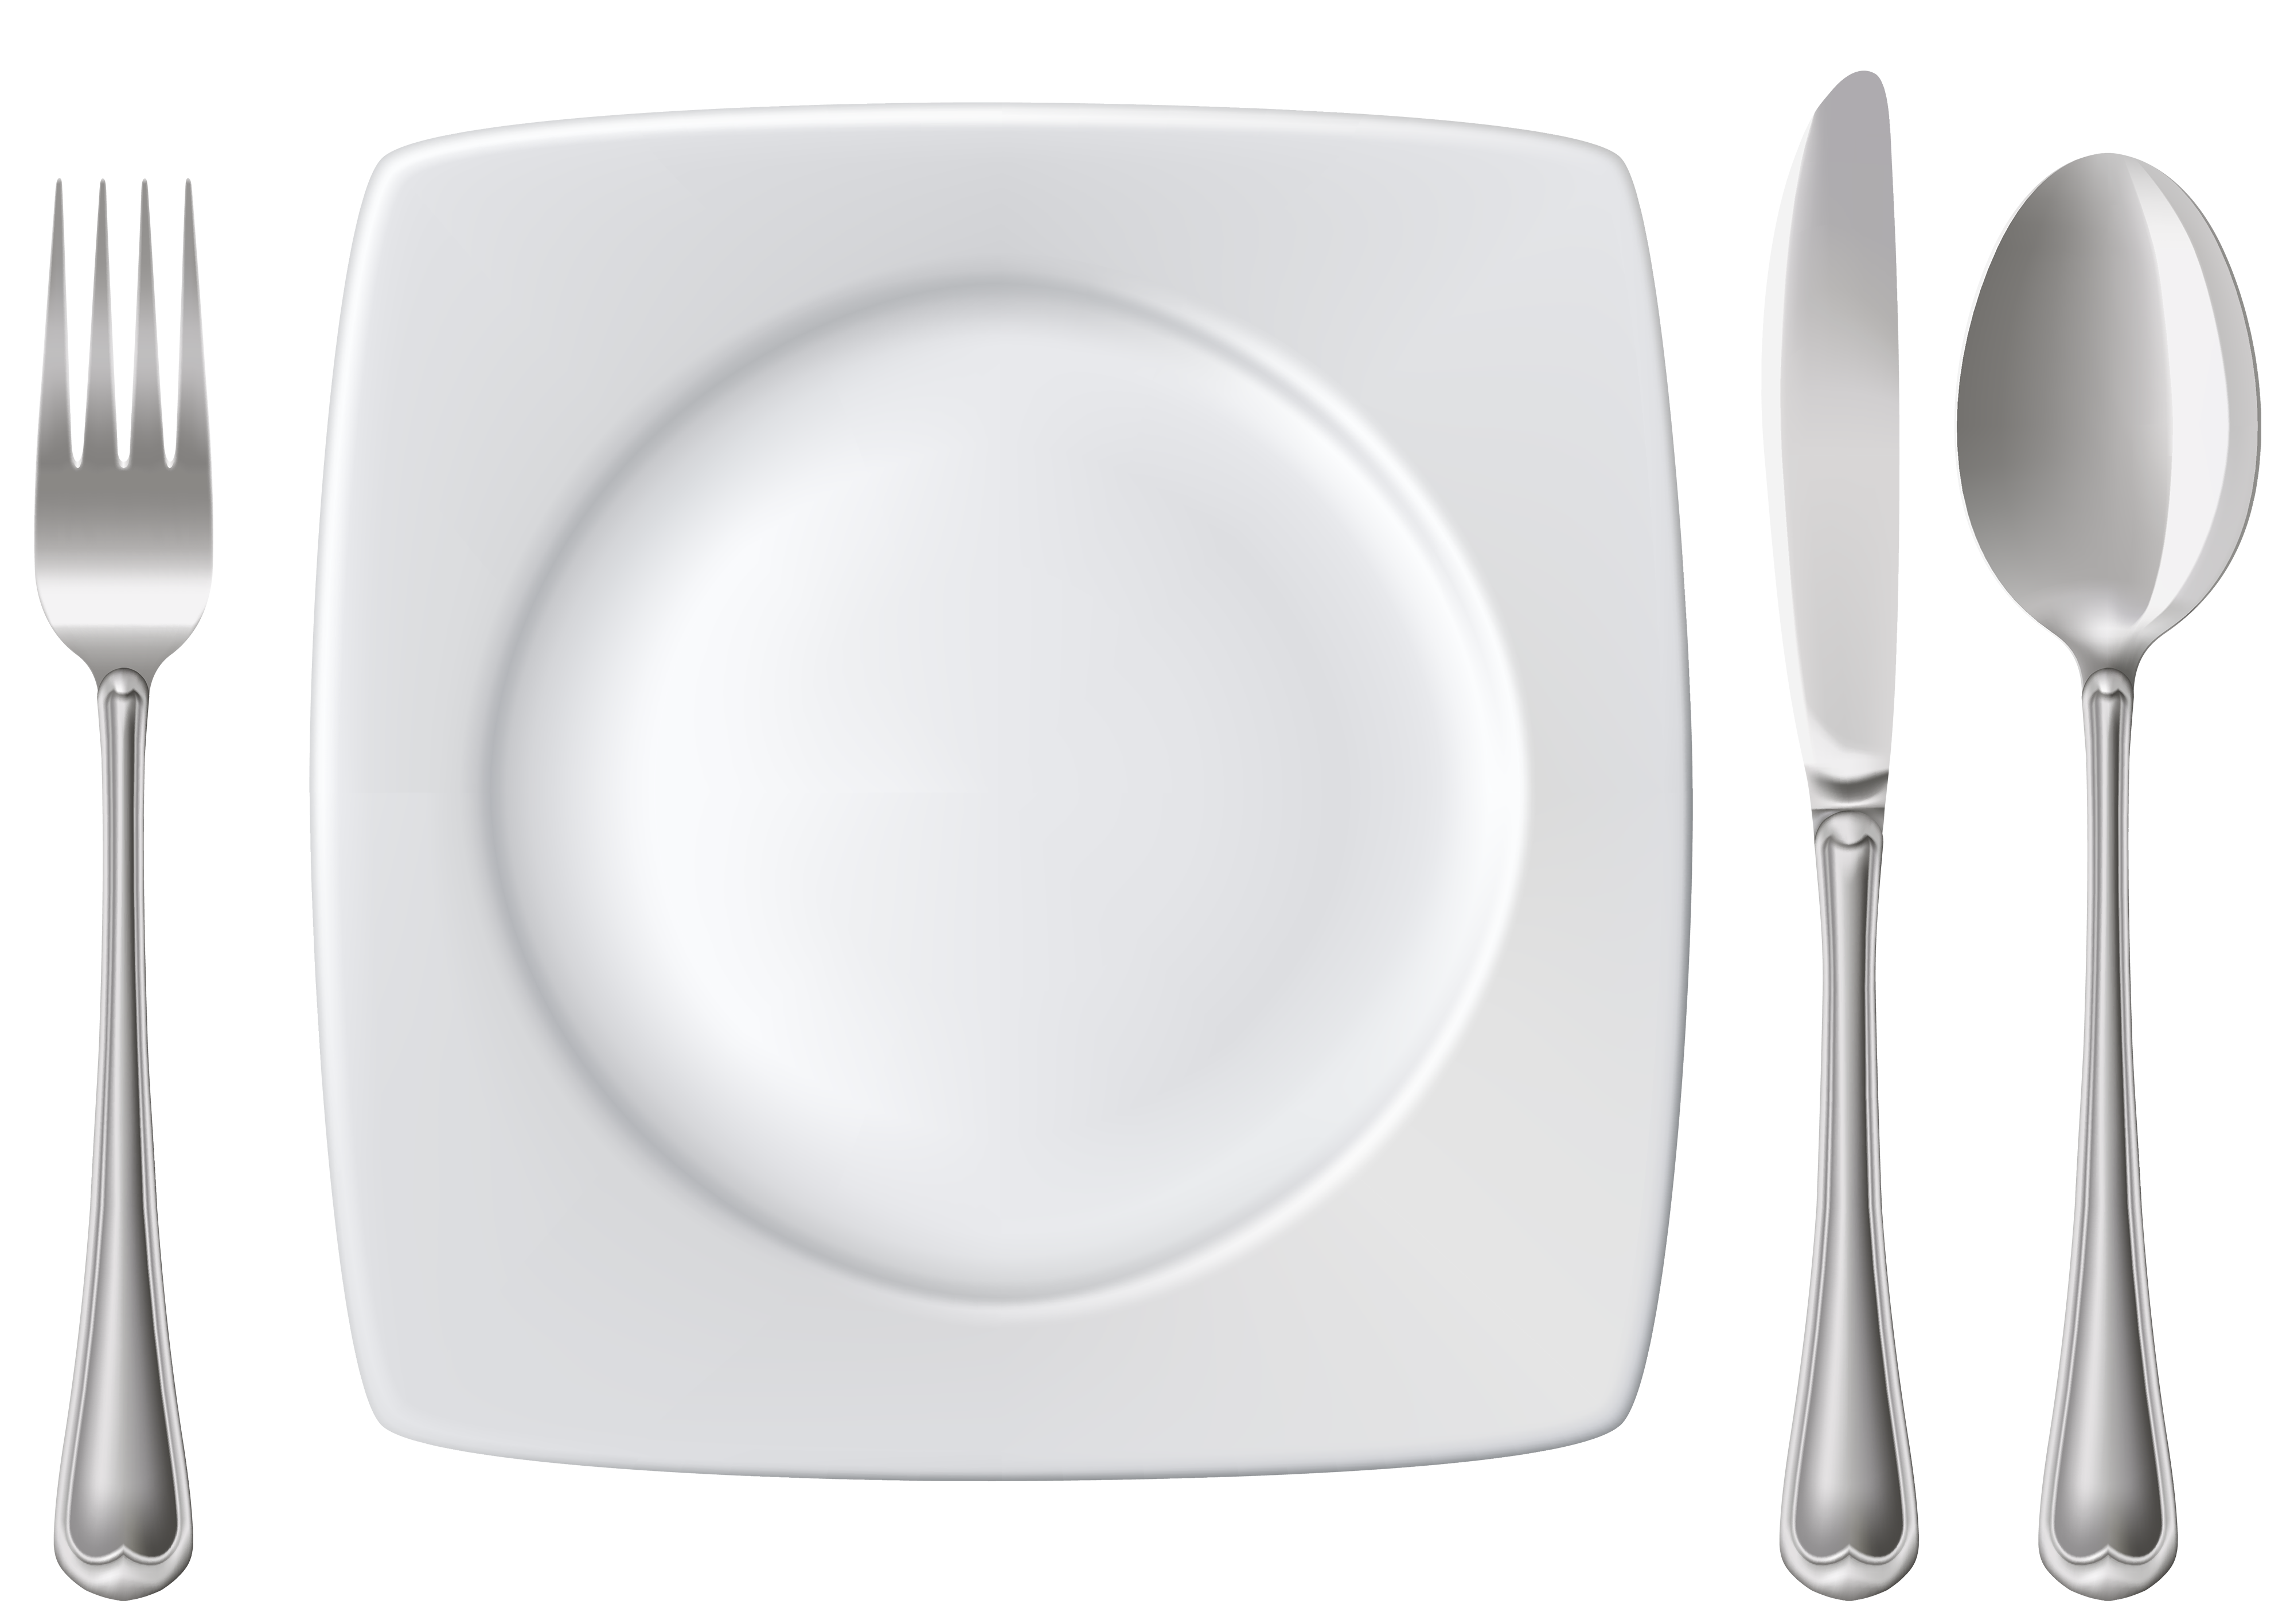 Plate Spoon Knife and Fork PNG Clipart.